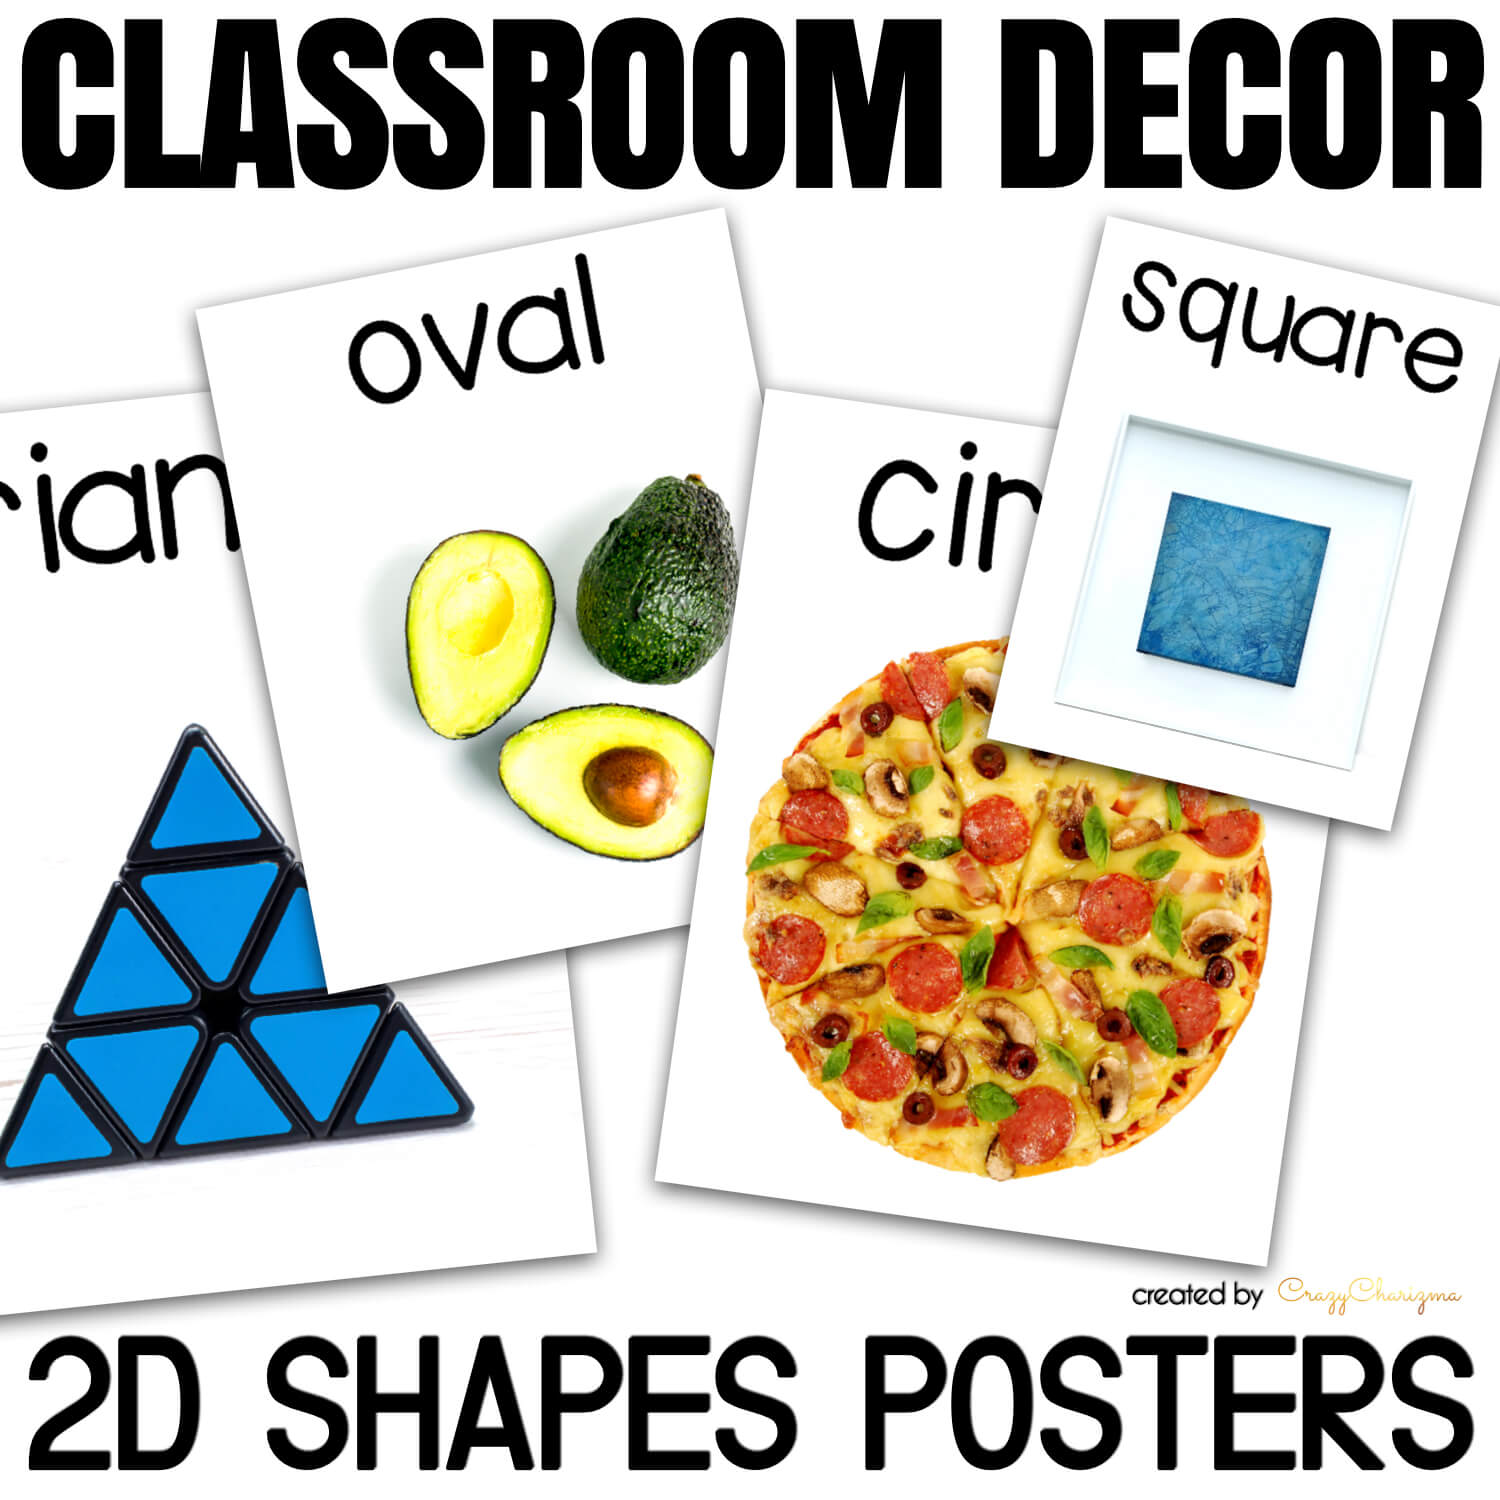 Need bright 2D shapes posters with real-life objects? You've found them! Modern look, vibrant colors, easy to understand objects with 2D shapes.